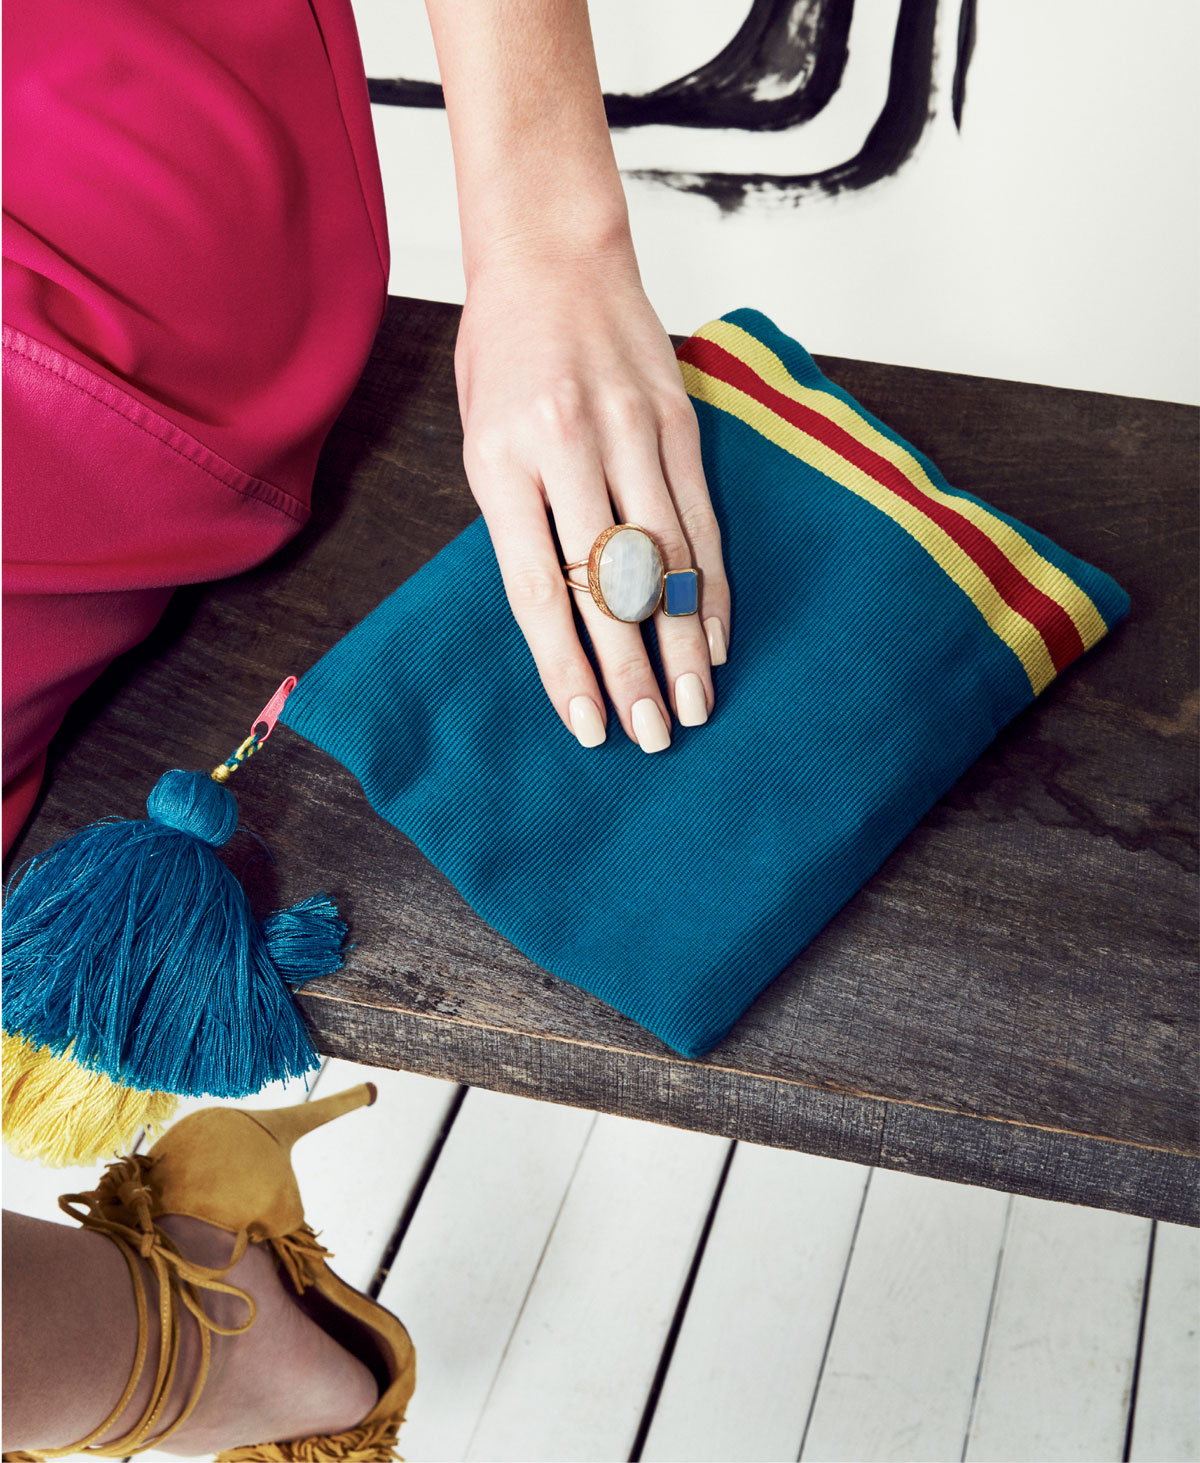 Pais Textil turquoise zip clutch with yellow and pink stripe, $40 at ibu; and Heather Tiller 18K gold vermeil and large moonstone ring, $155, and blue chalcedony ring, $80, both at Filigree